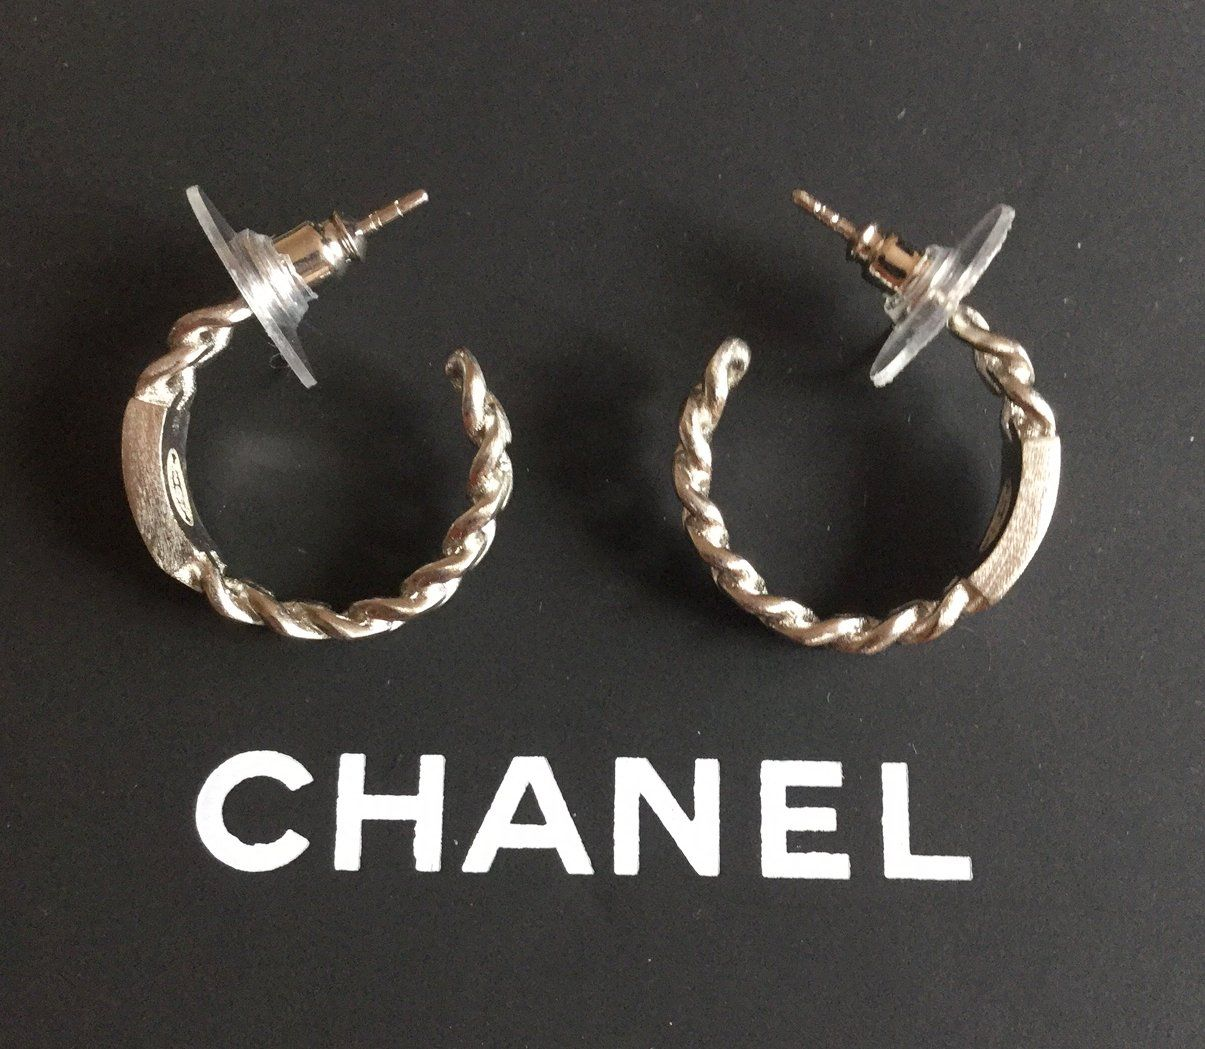 Chanel Small Hoop Chain Earrings 2017 Braided Silver Cc Logo Hallmark Authentic